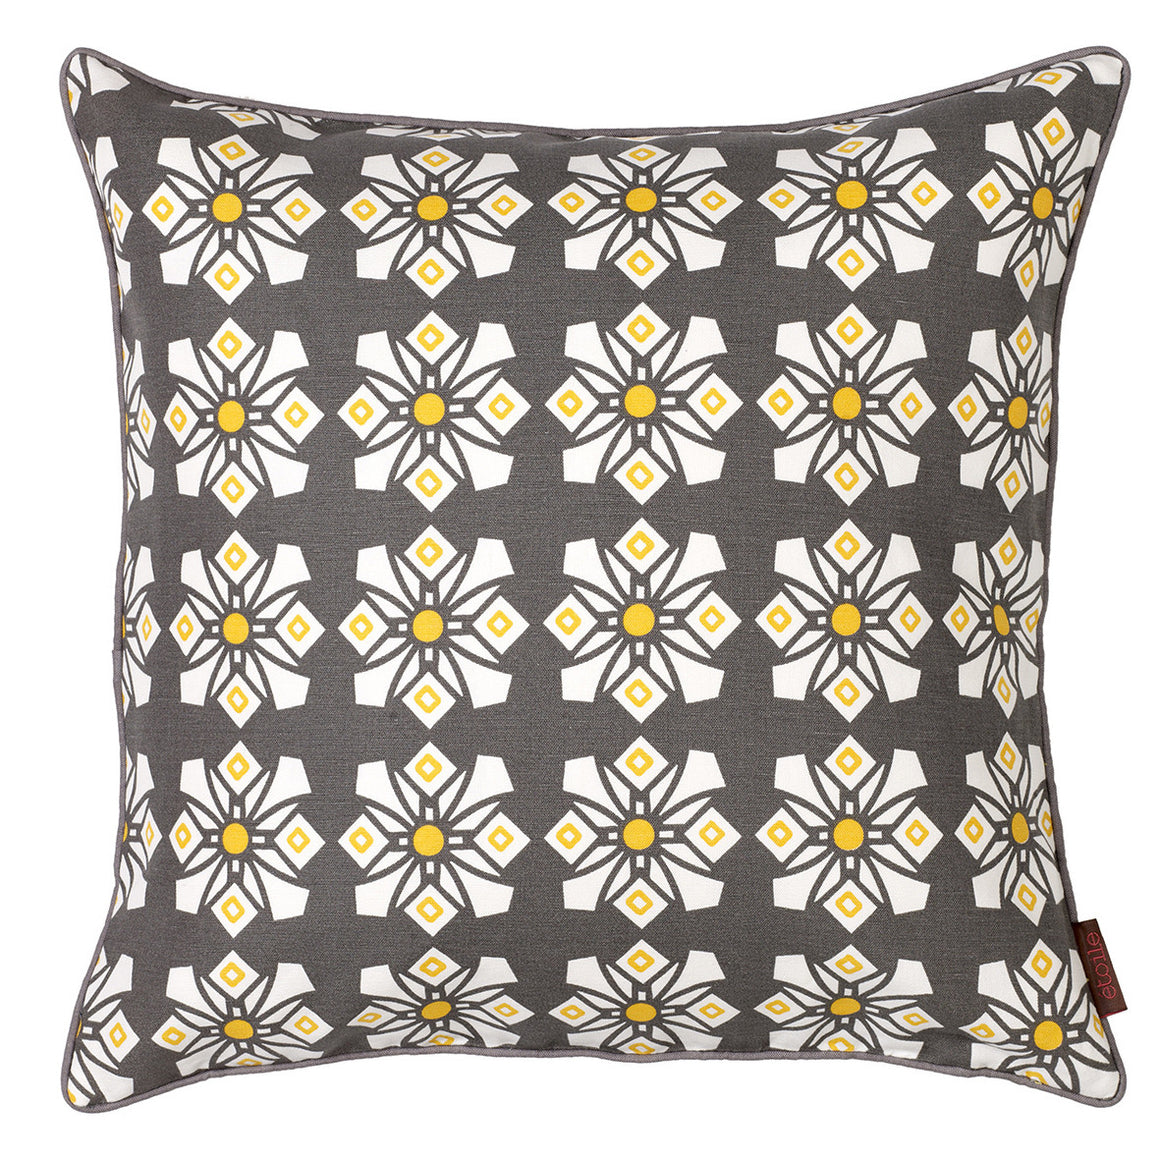 Dorothy Geometric Pattern Cotton Linen Cushion in Stone Grey 45x45cm